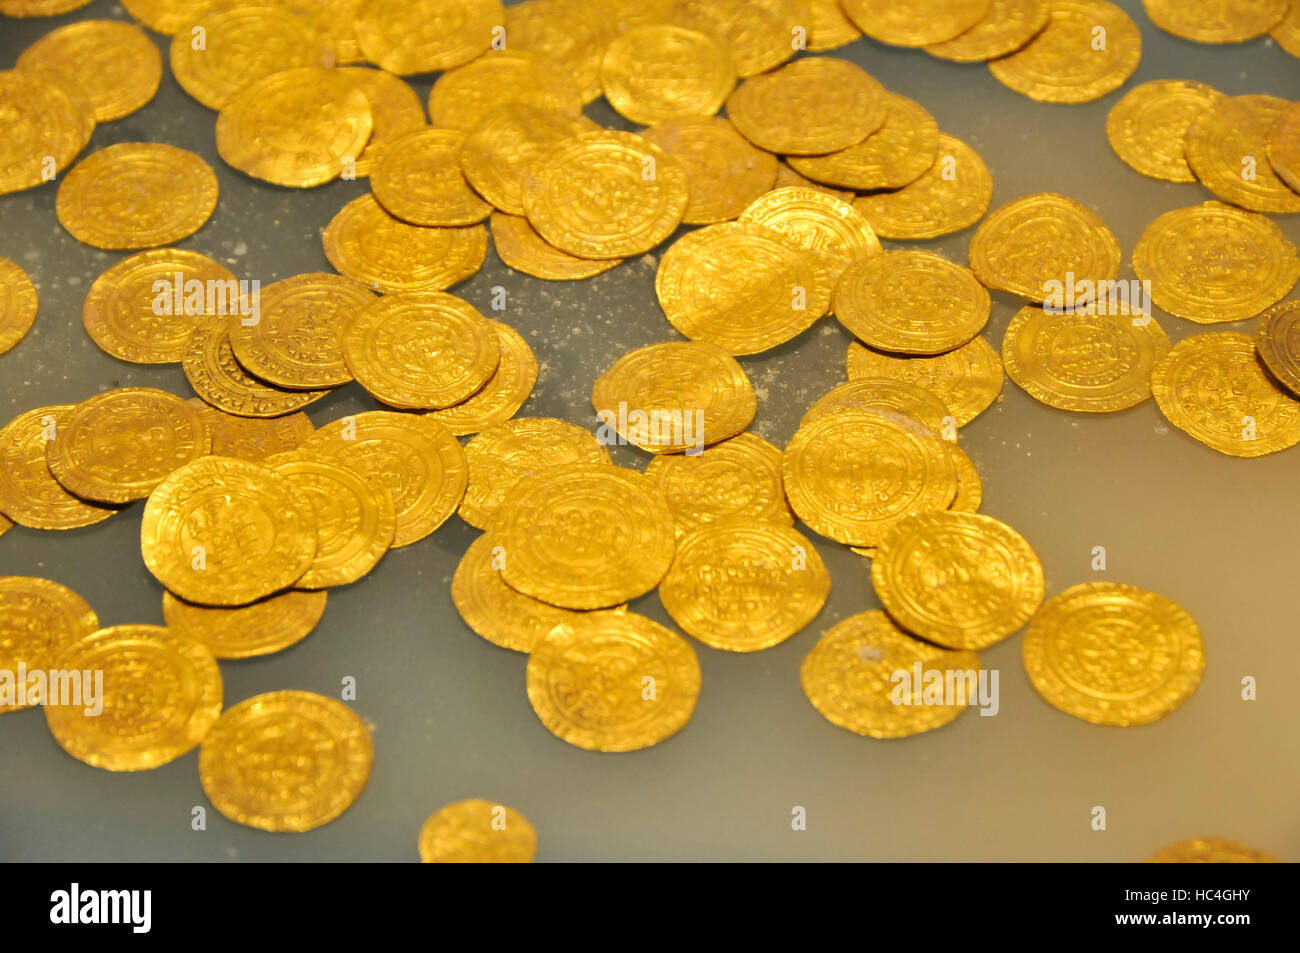 A display of part of the gold coin hoard of gold coins from the Fatimid period (eleventh century CE) in the ancient - Stock Image